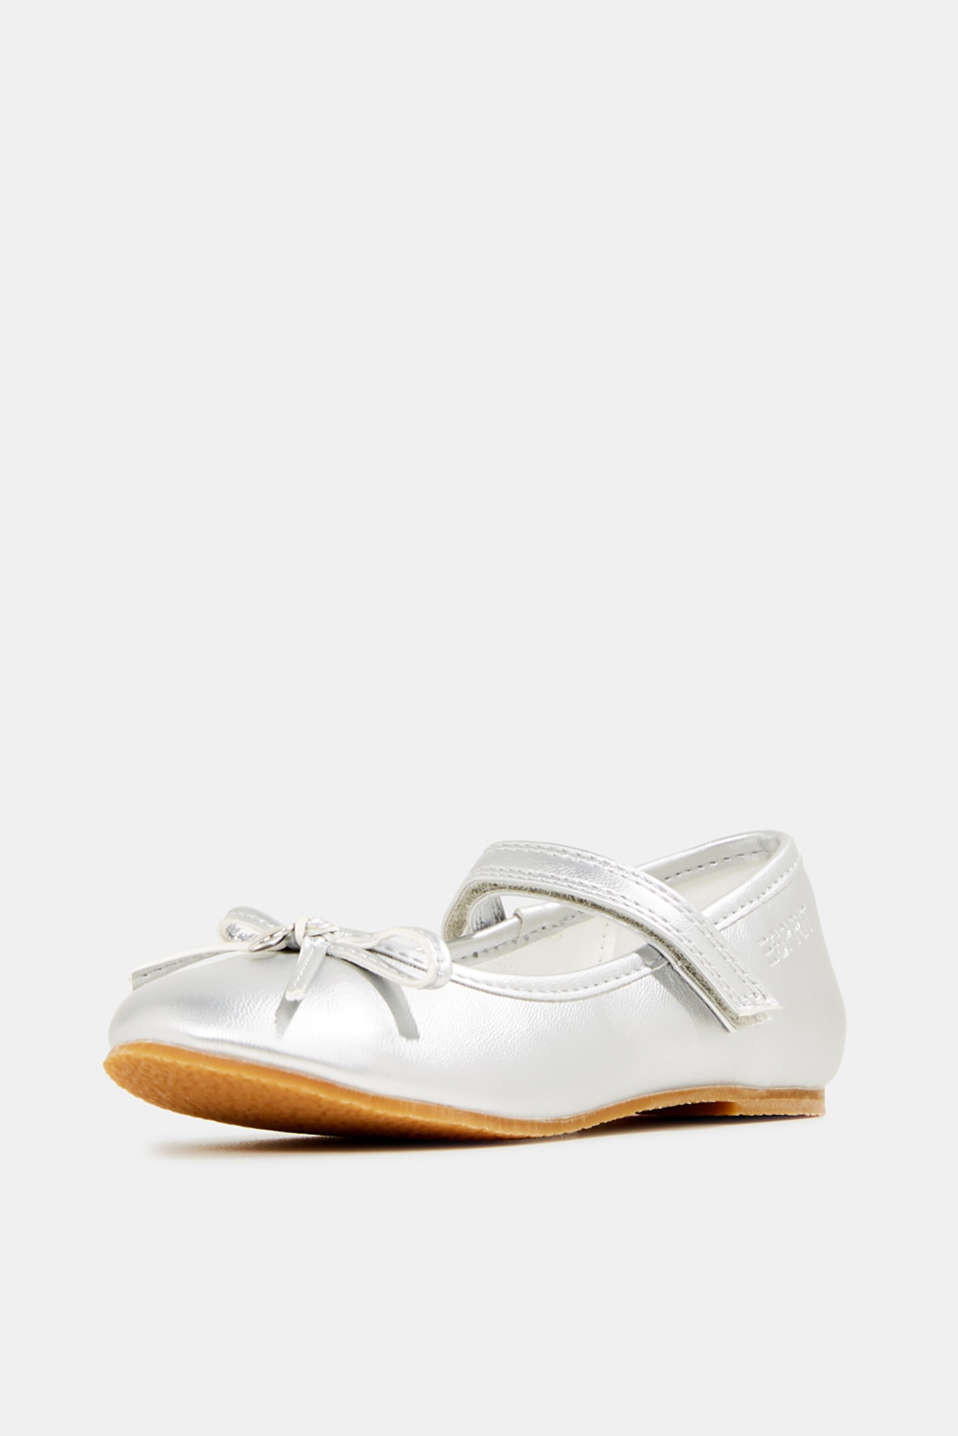 Ballerinas with Velcro straps, in faux leather, SILVER, detail image number 2